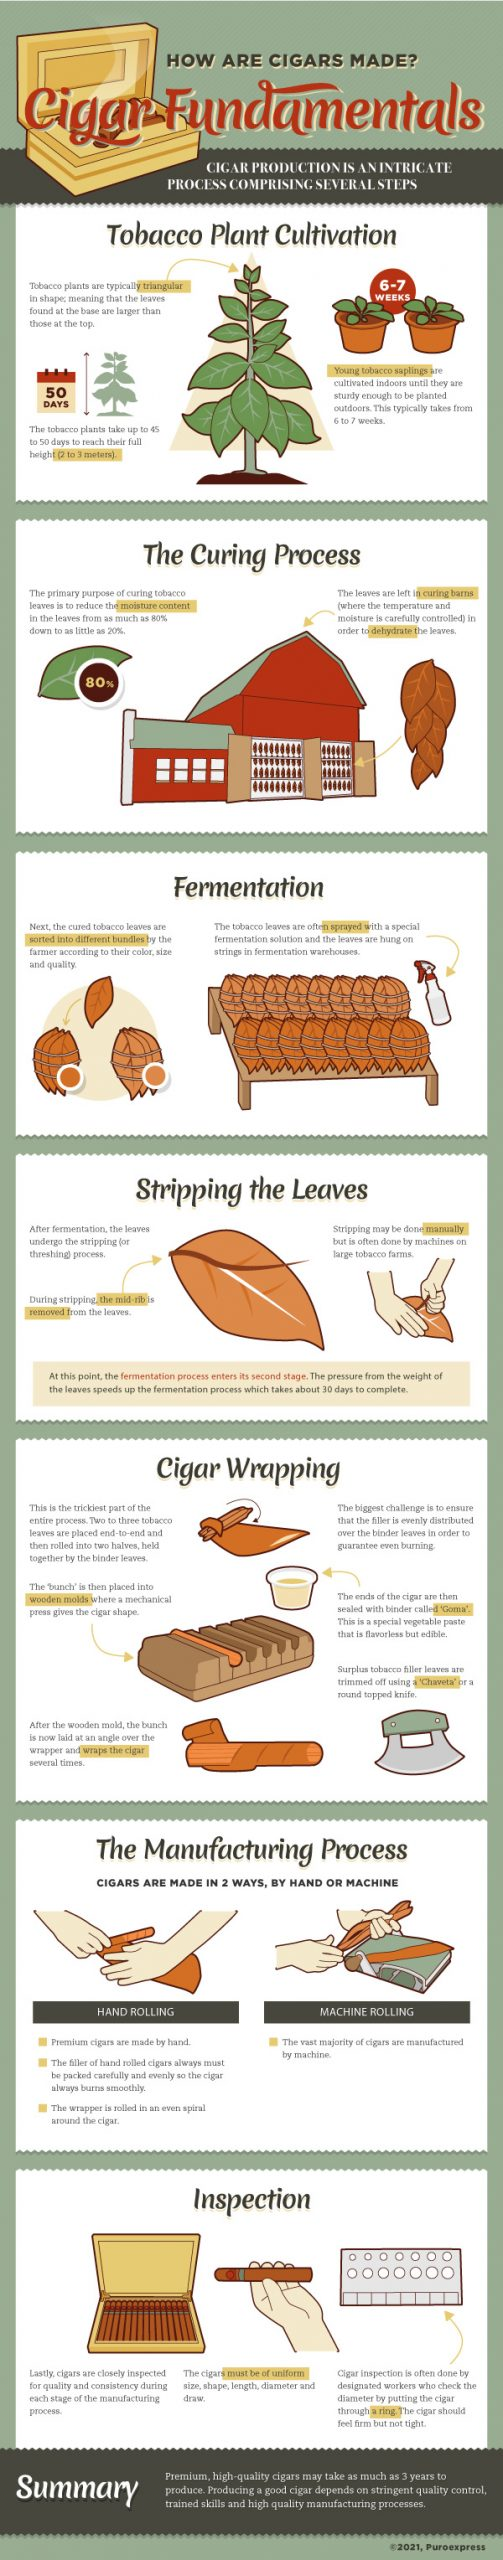 Cuban Cigar Fundaments Infographic